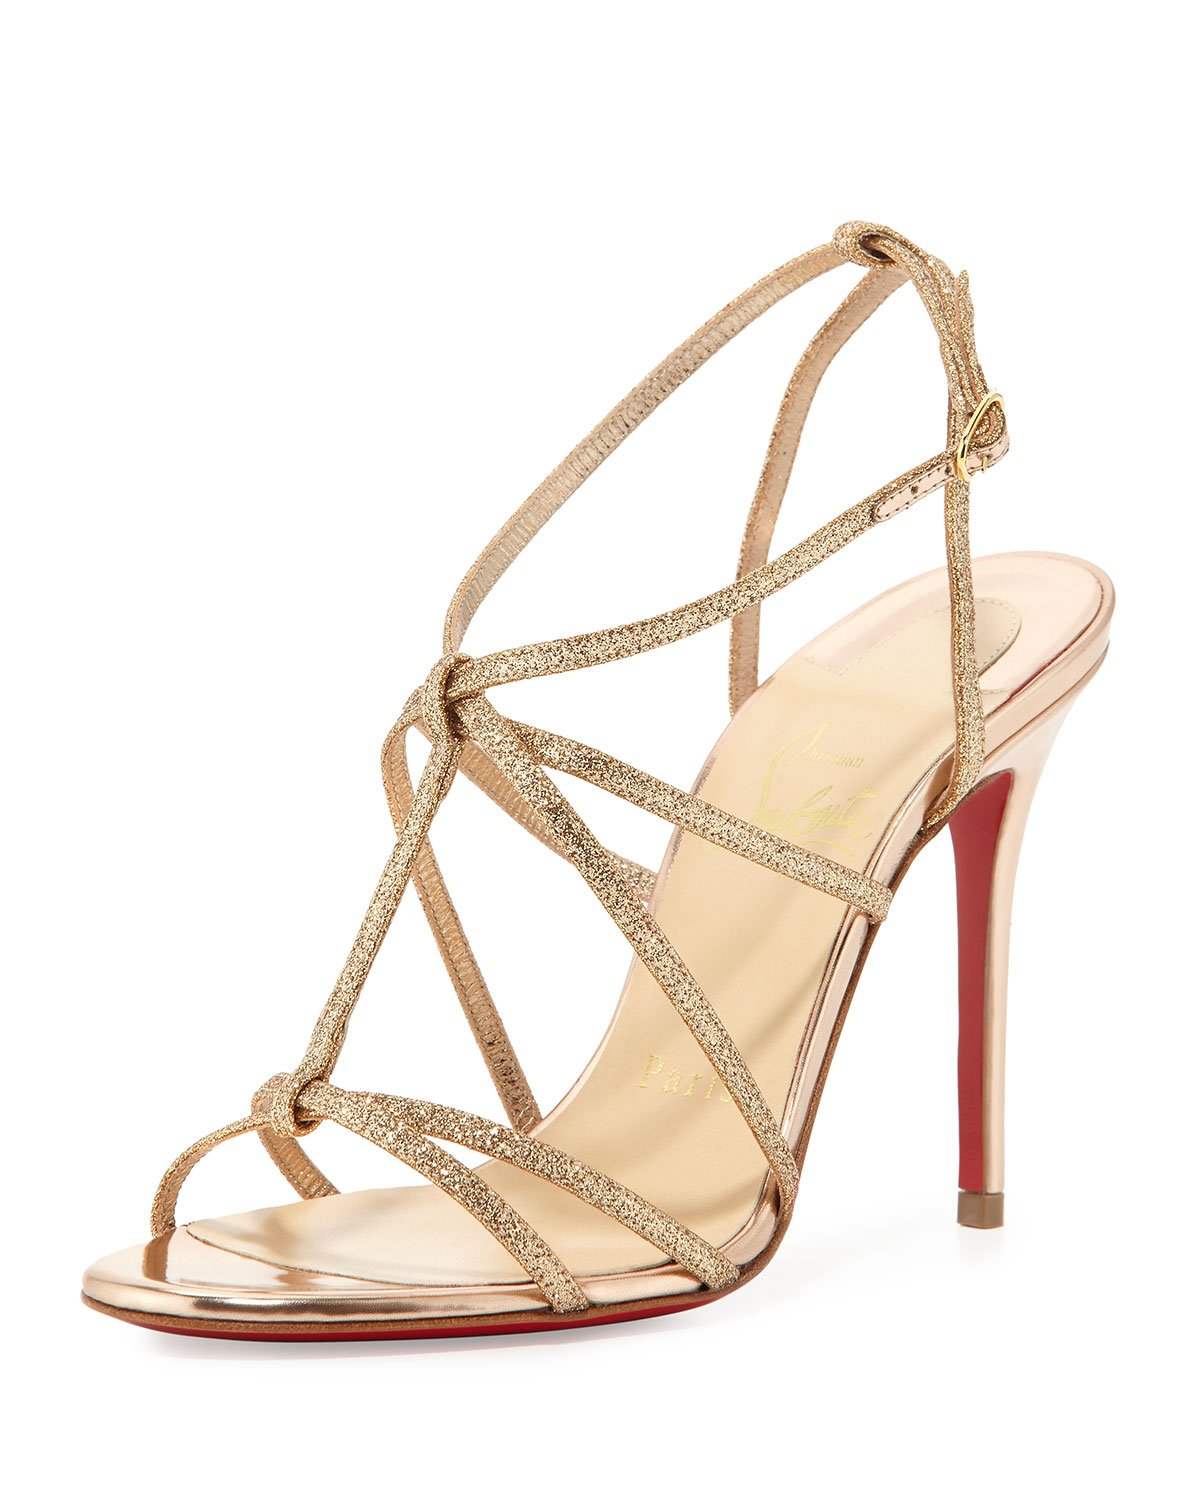 28f4cd63061 spain new christian louboutin youpiyou leather sandals d8515 7f58b  new  style lyst christian louboutin youpiyou glitter sandals in natural 08100  63544